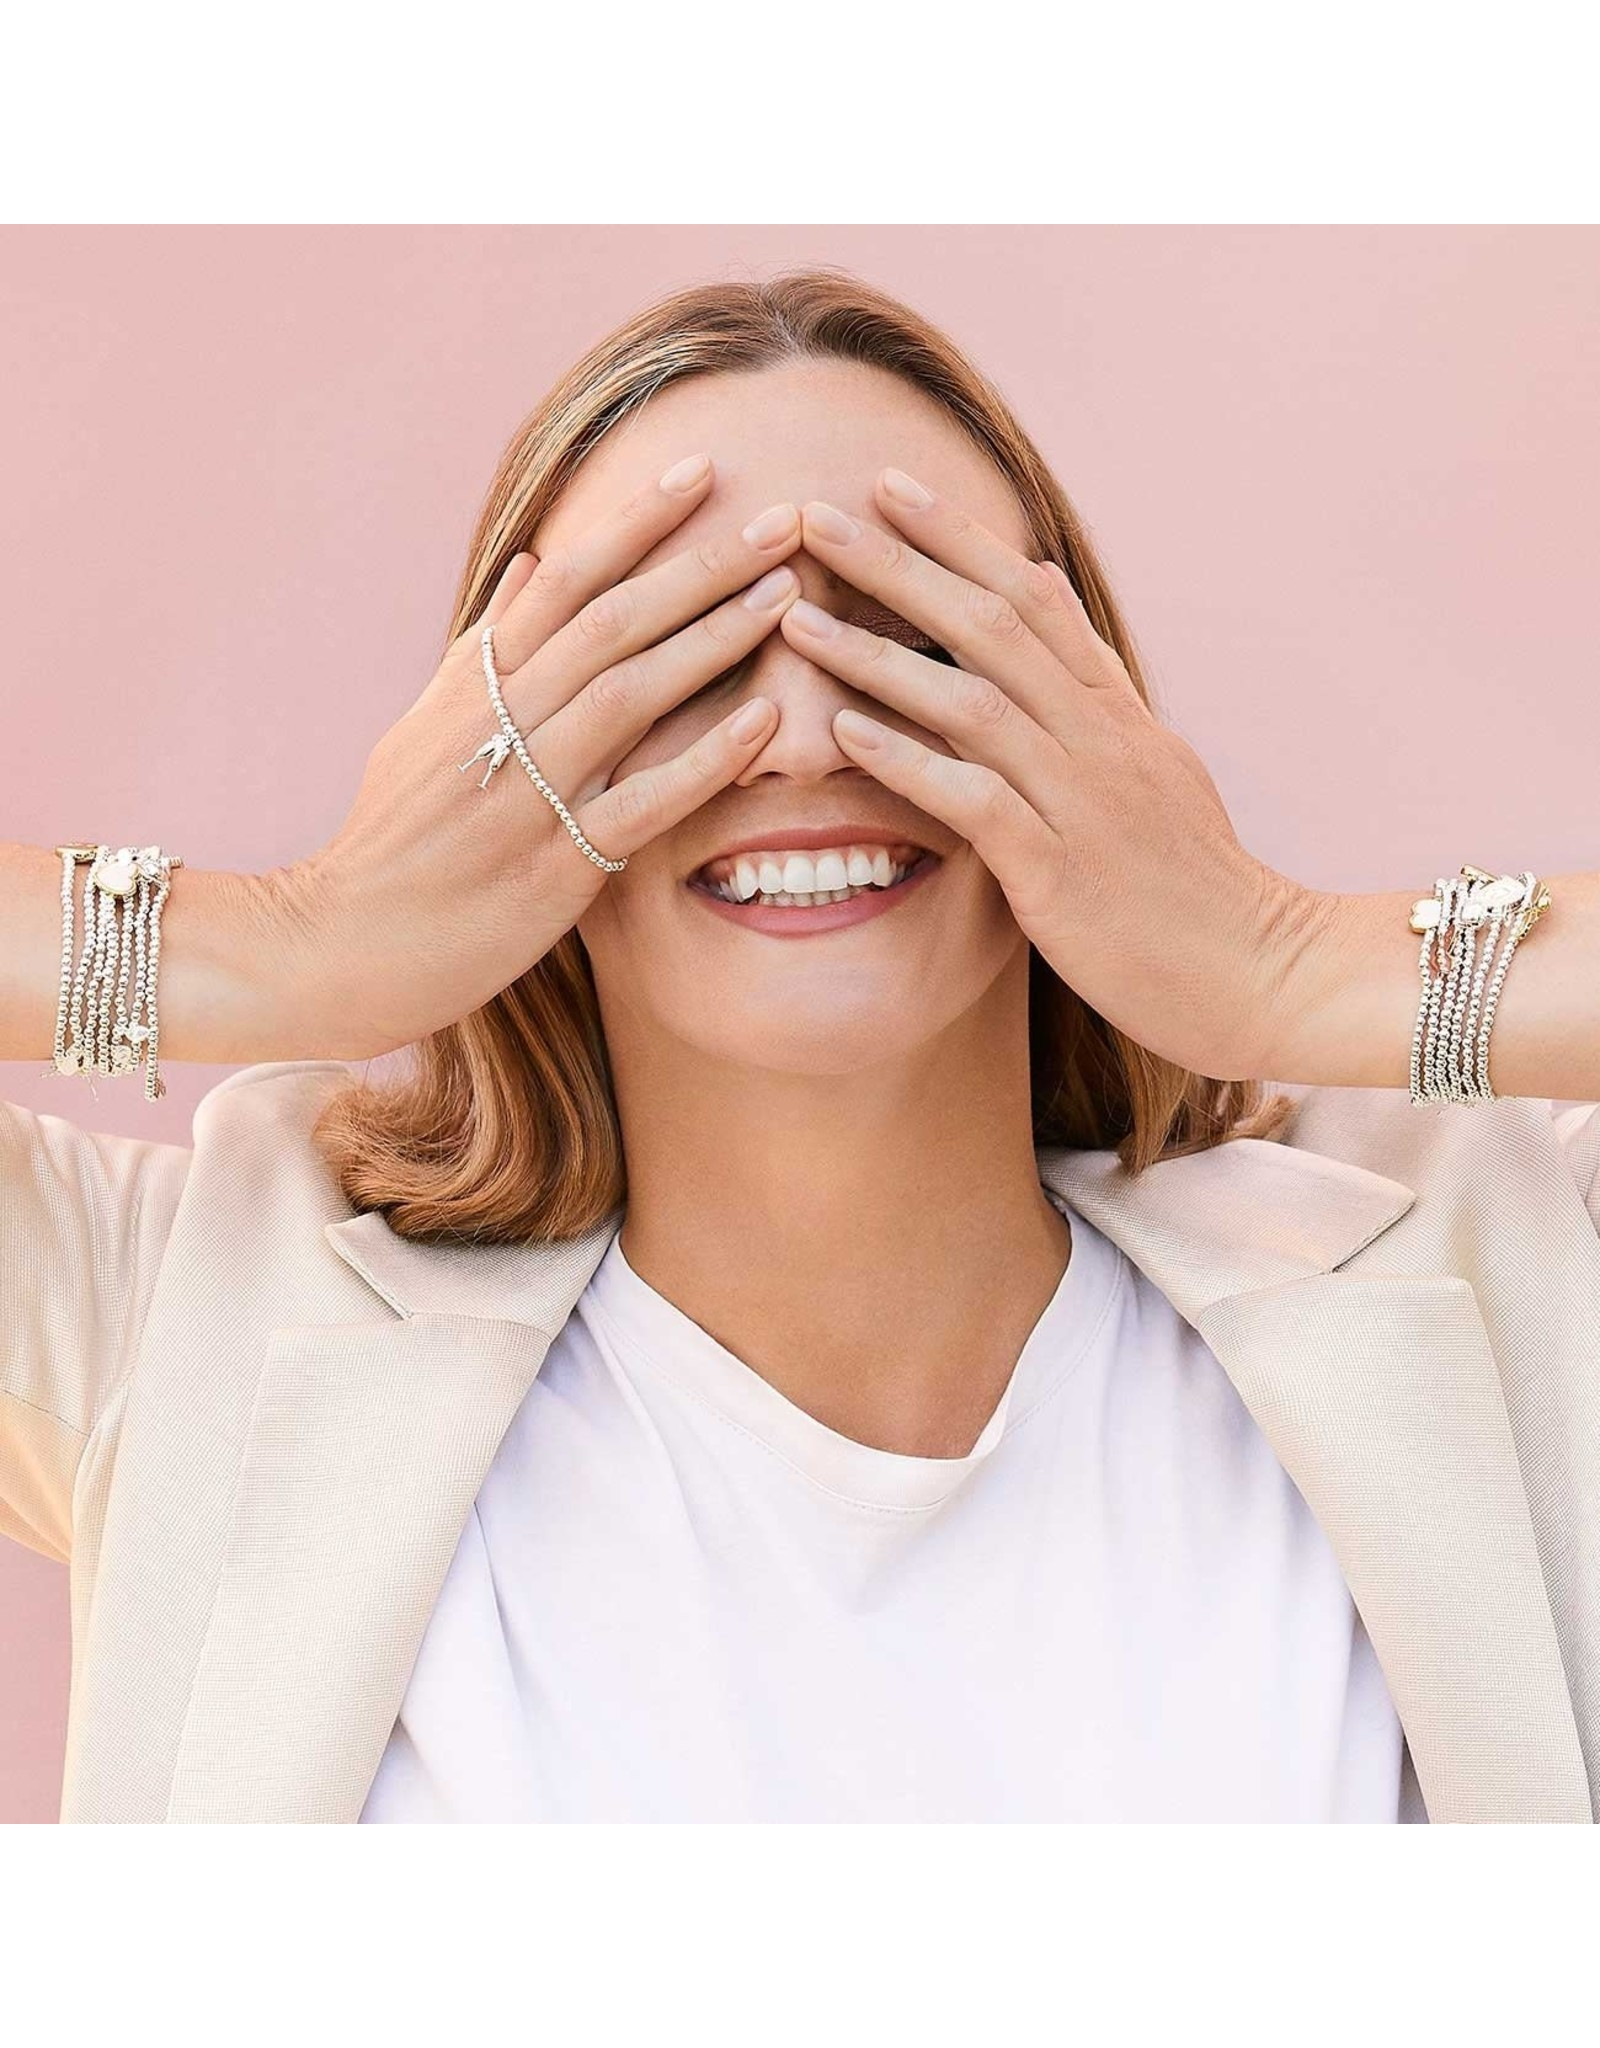 Joma Jewellery Boxed A Little - Let the Fun be-Gin! - Armband